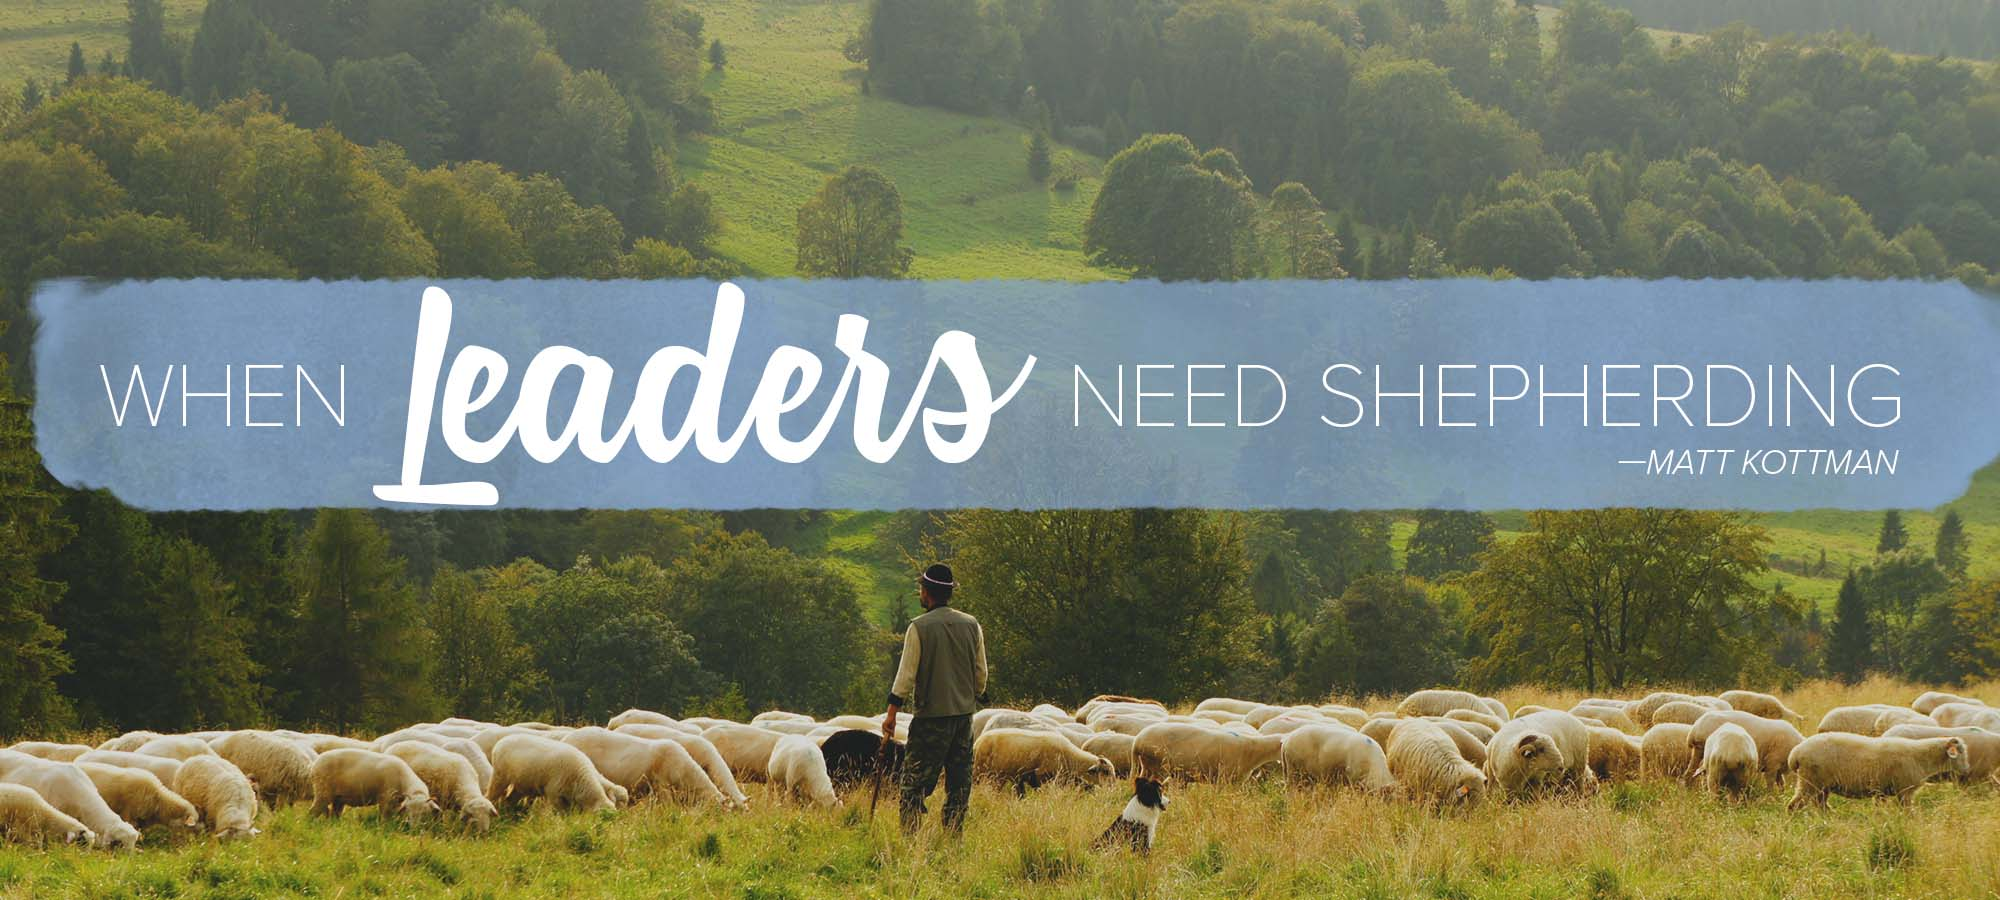 When Leaders Need Shepherding